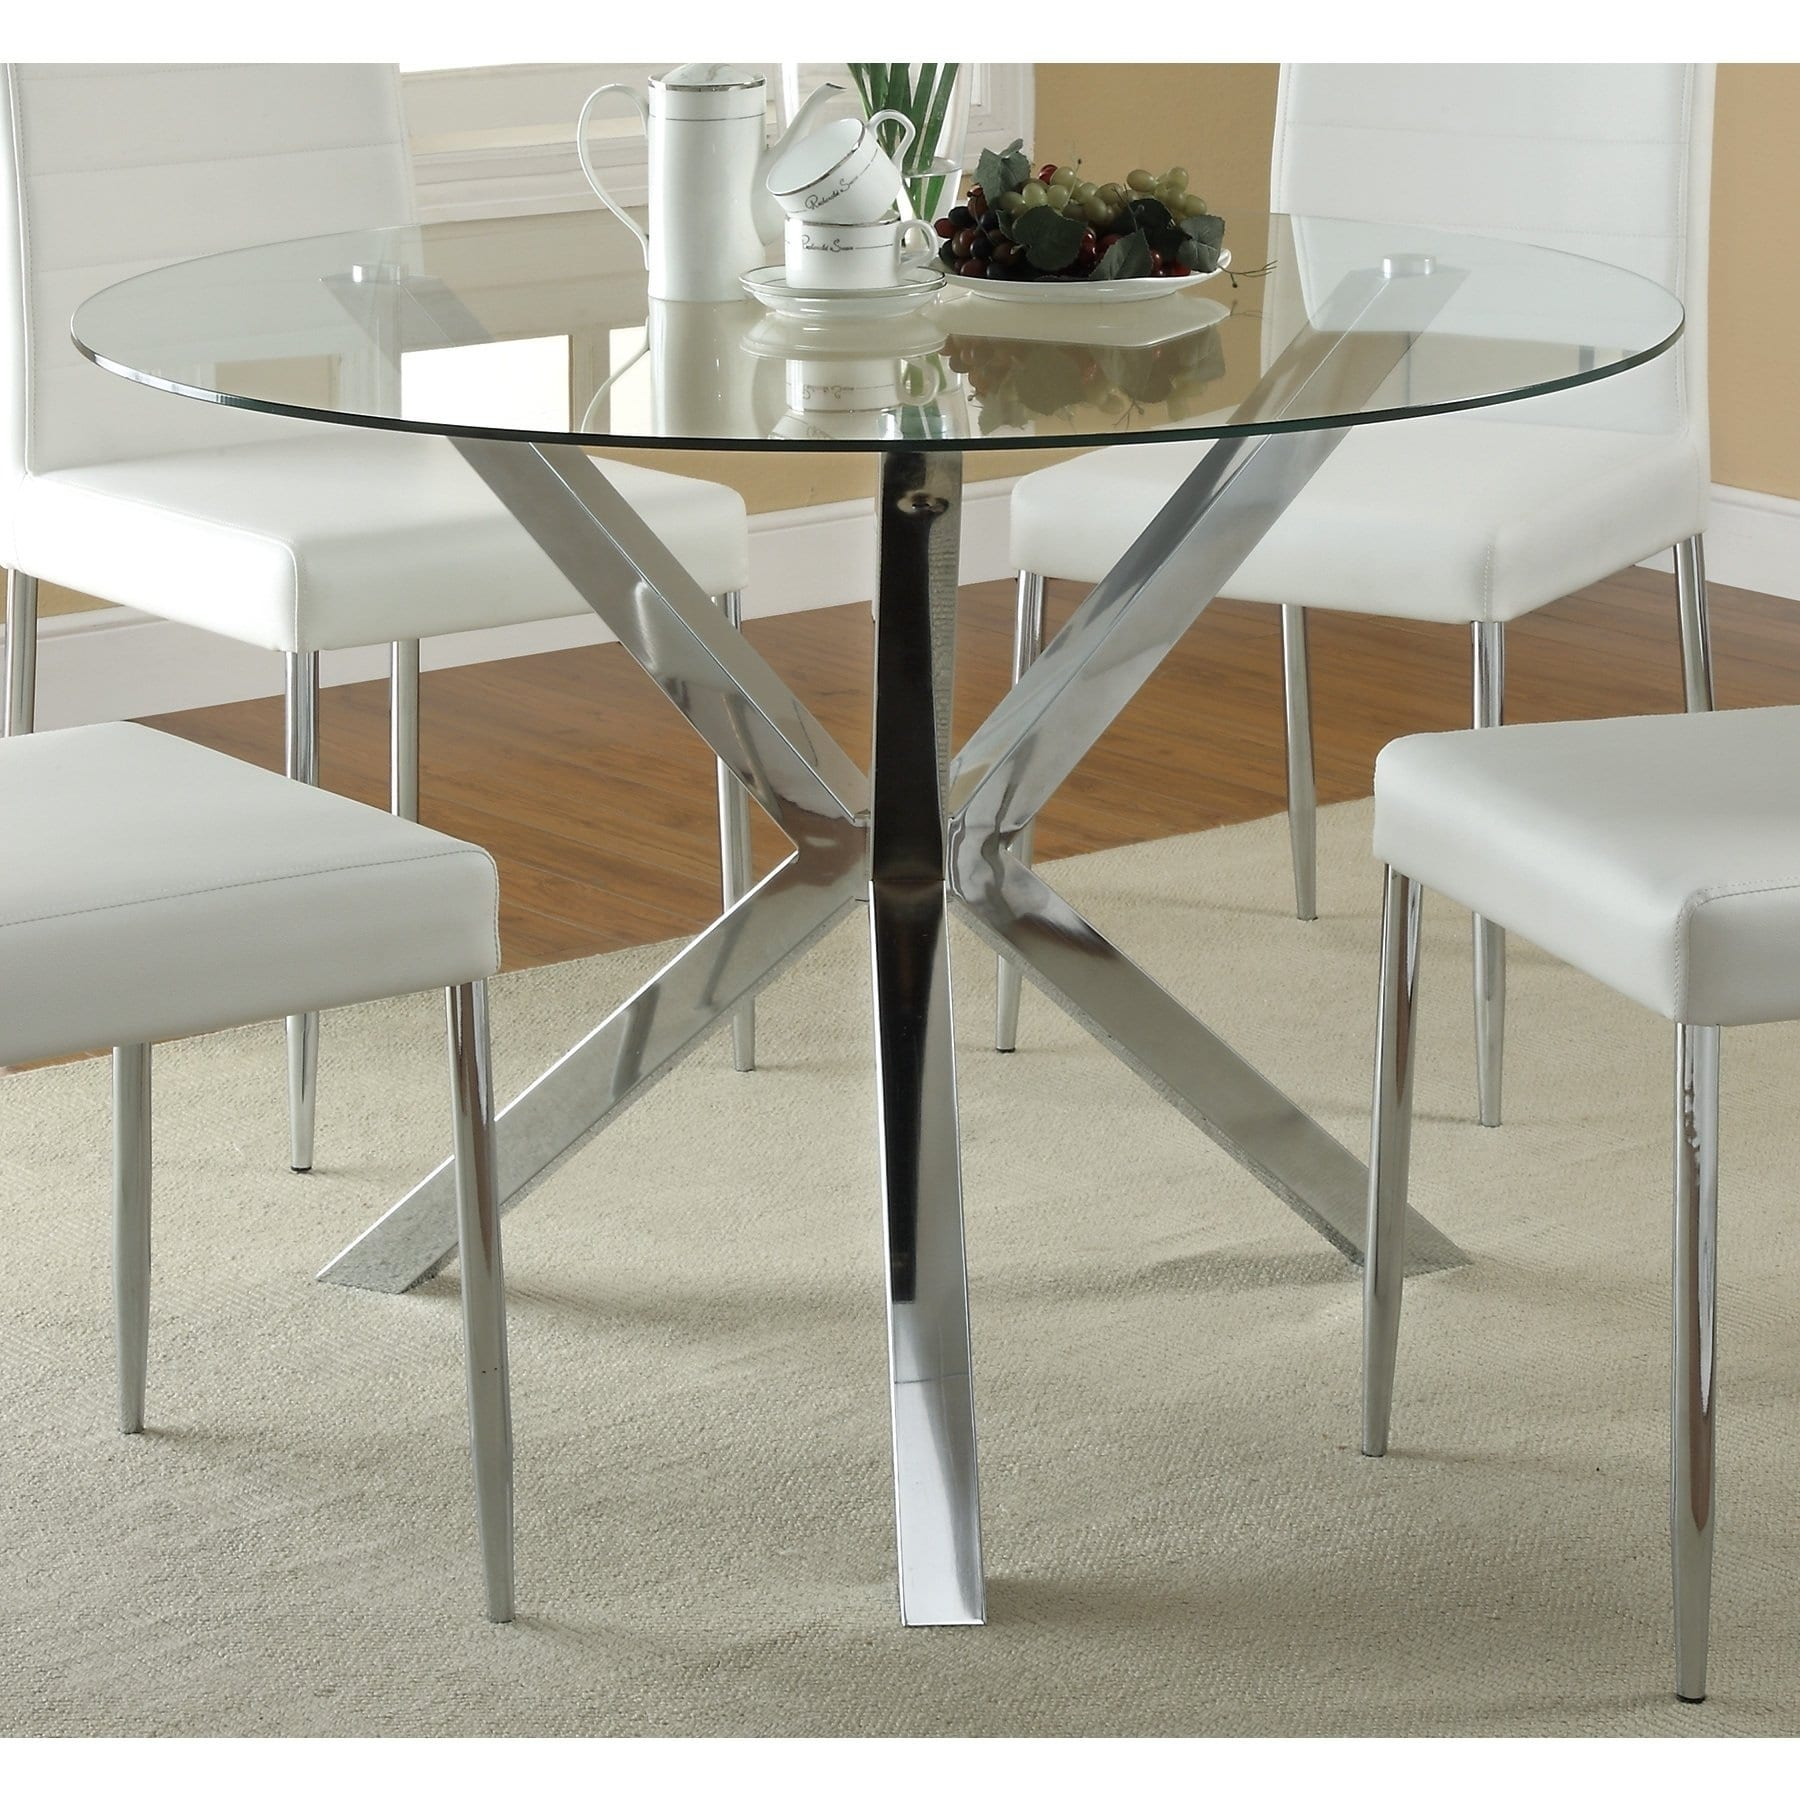 Round Glass Top Dining Table Coaster Vance Contemporary Glass Top Round Dining Table In Chrome